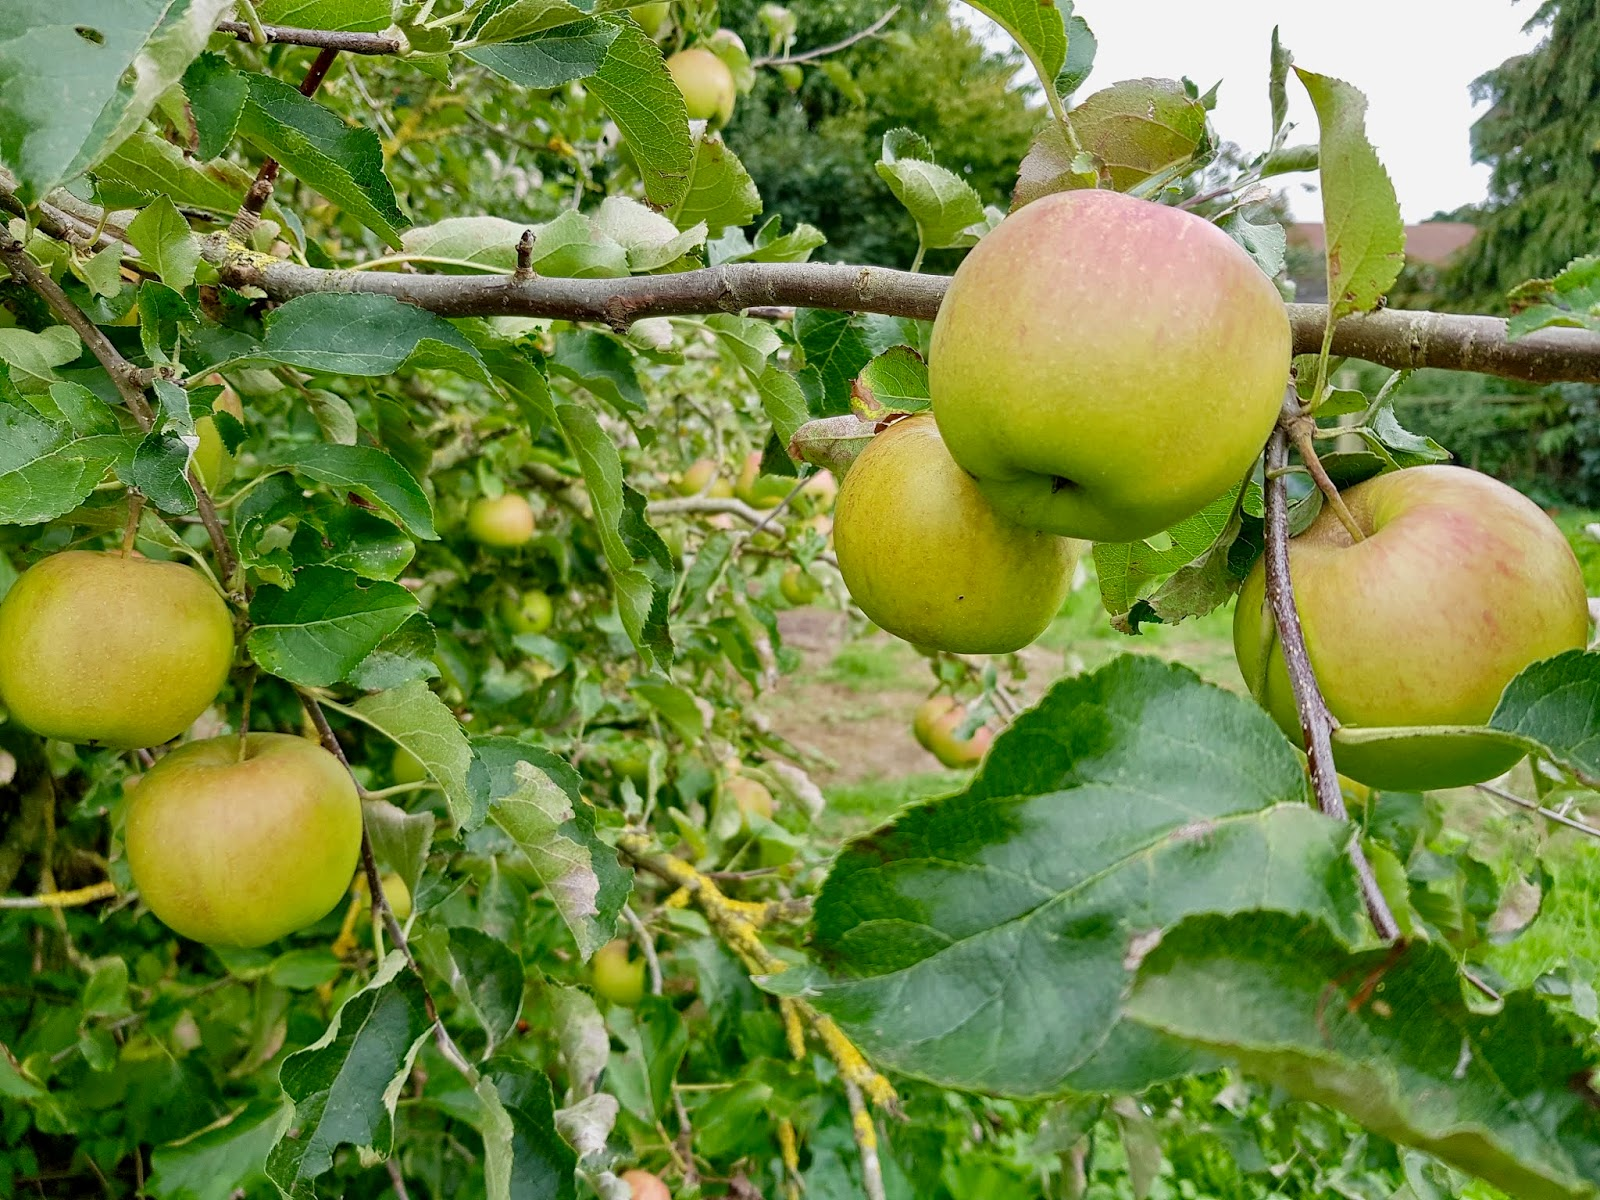 green apple trees, bursting with fruit